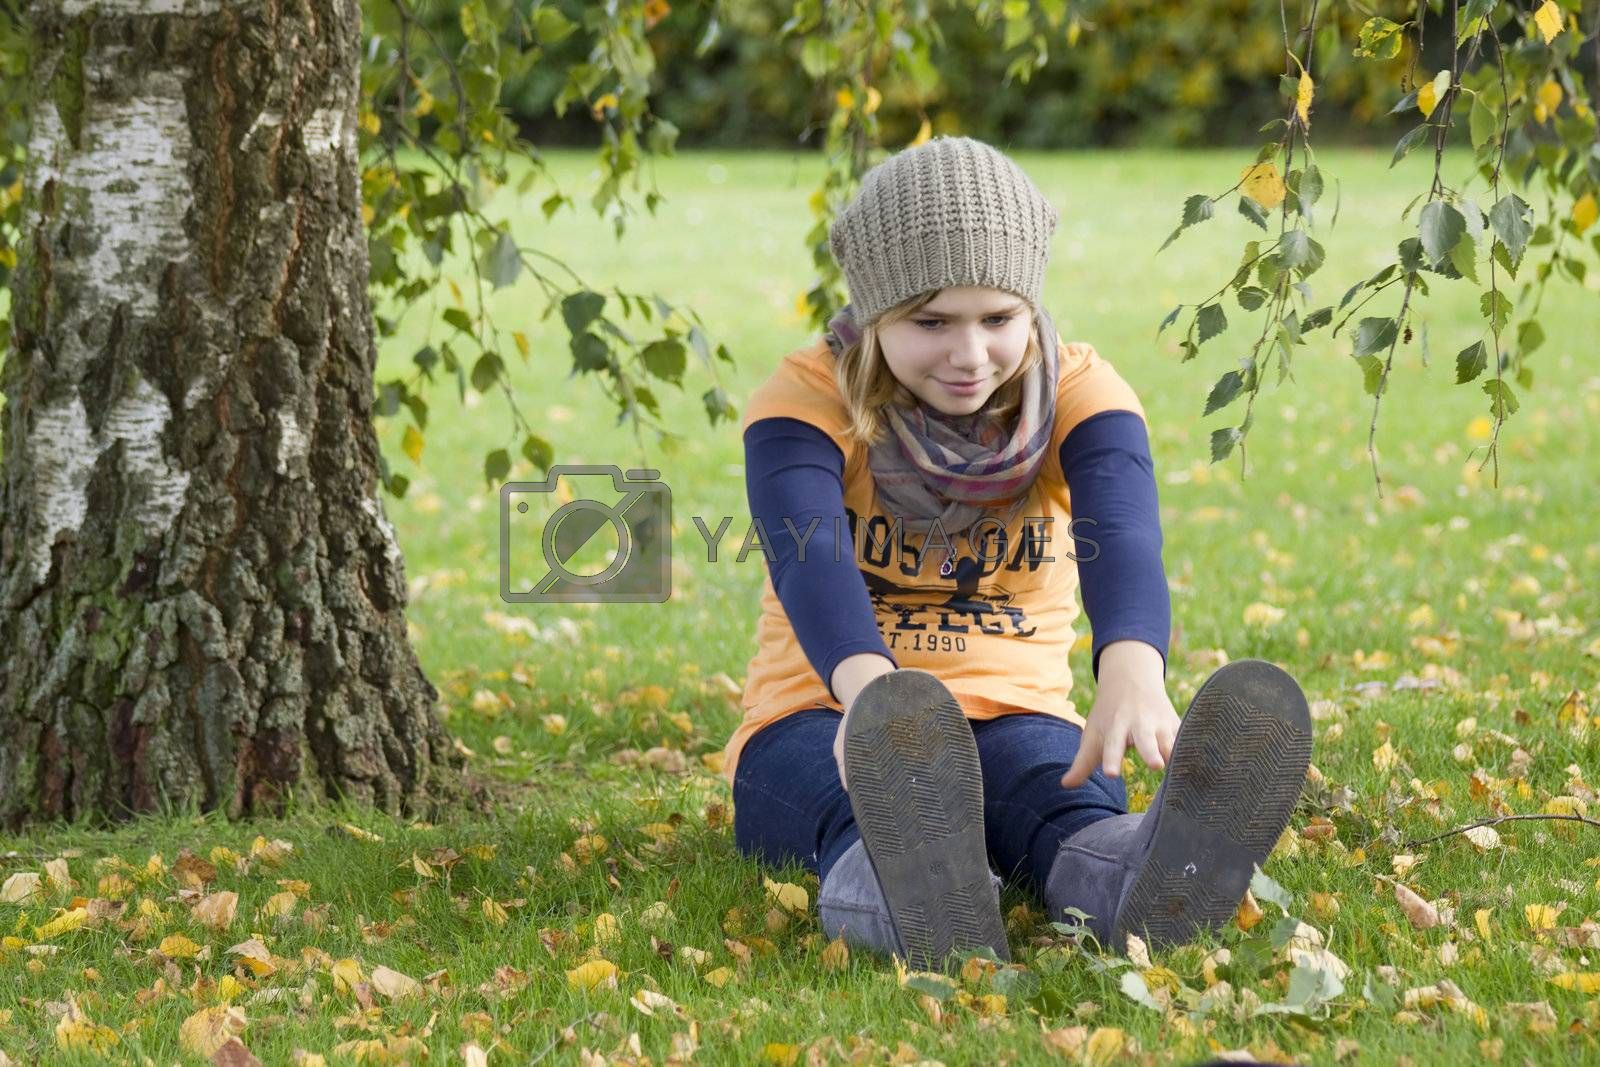 Cute girl playing in the park